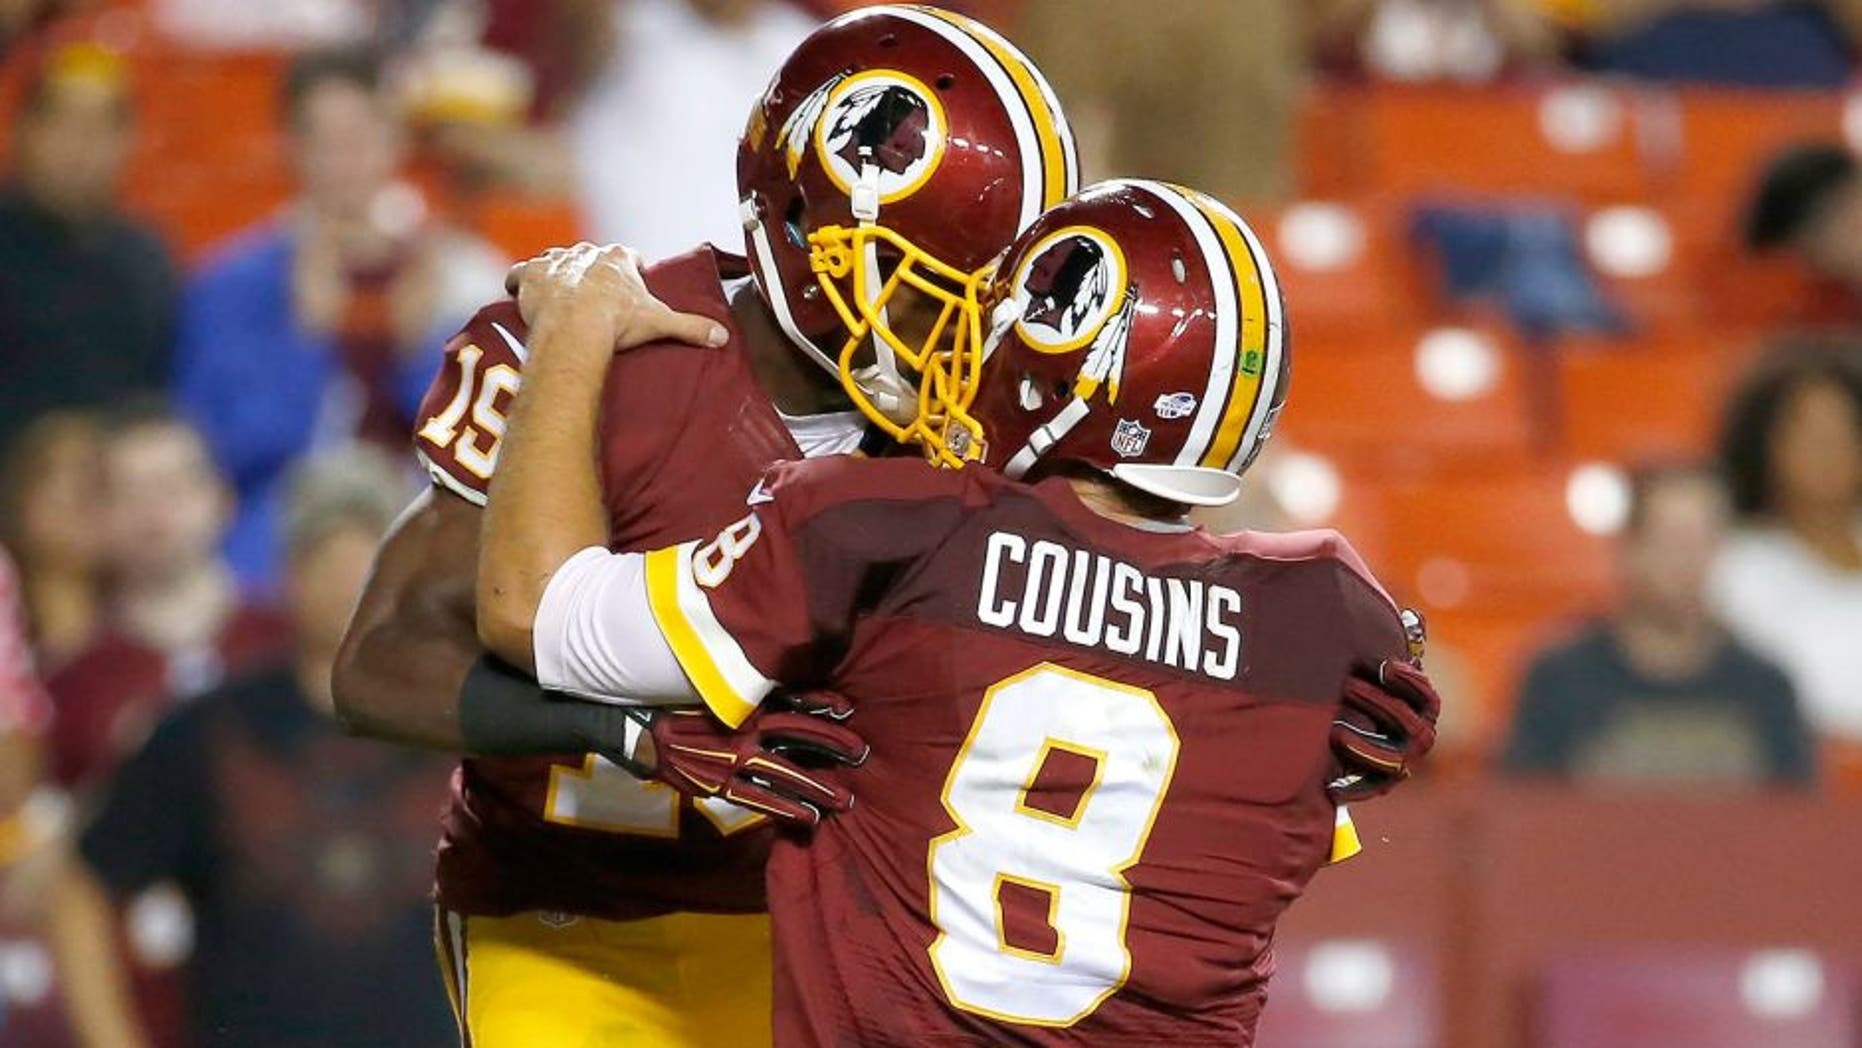 Washington Redskins wide receiver Rashad Ross (19) celebrates his touchdown with quarterback Kirk Cousins (8) during the second half of an NFL preseason football game against the Detroit Lions, Thursday, Aug. 20, 2015, in Landover, Md. (AP Photo/Alex Brandon)